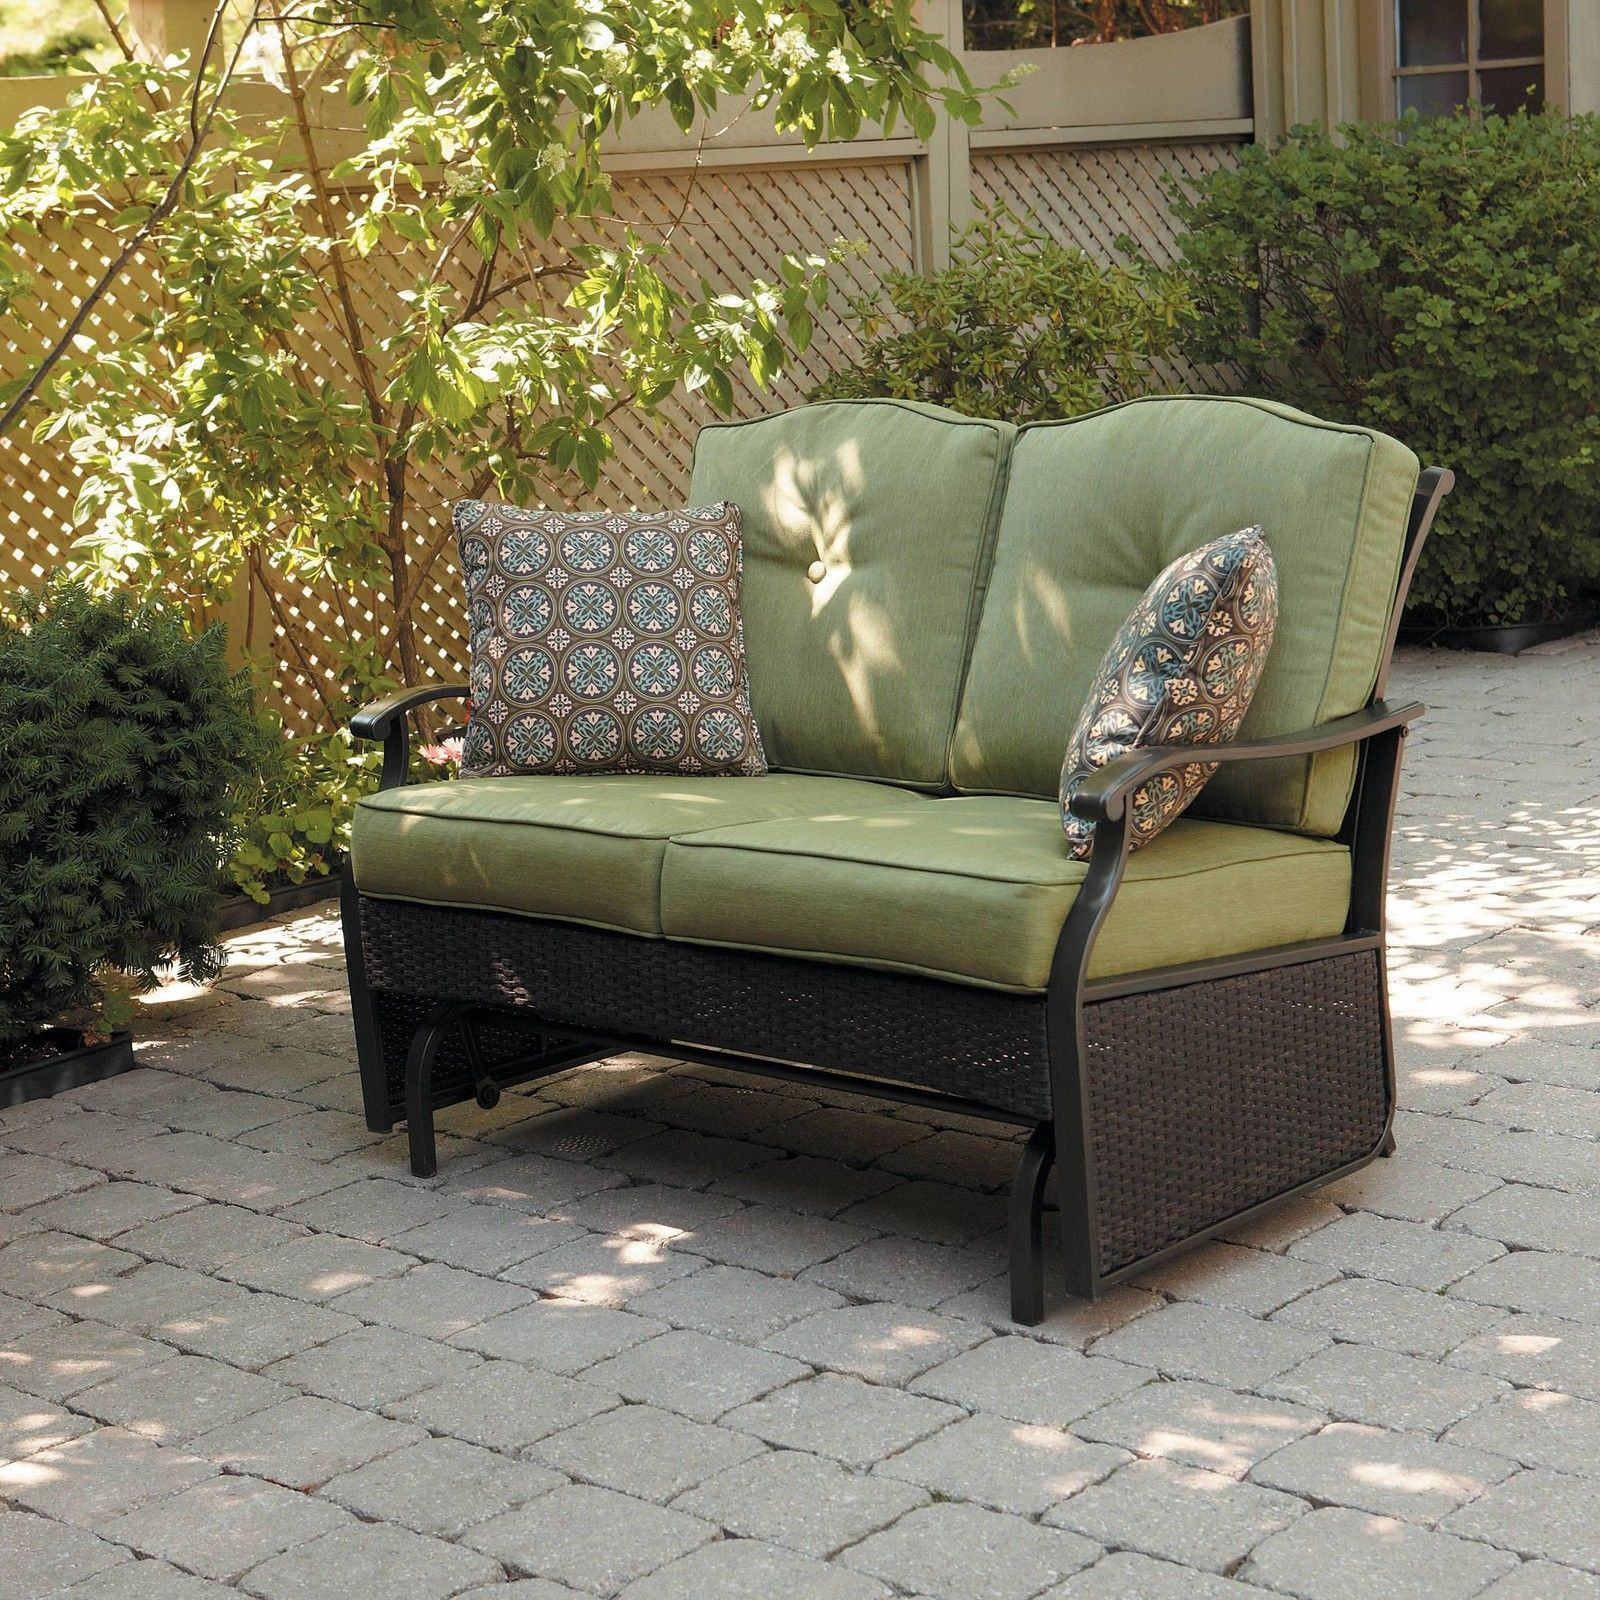 Glider Patio Chairs Green Glider Patio Bench Cushion Wicker Seat Home